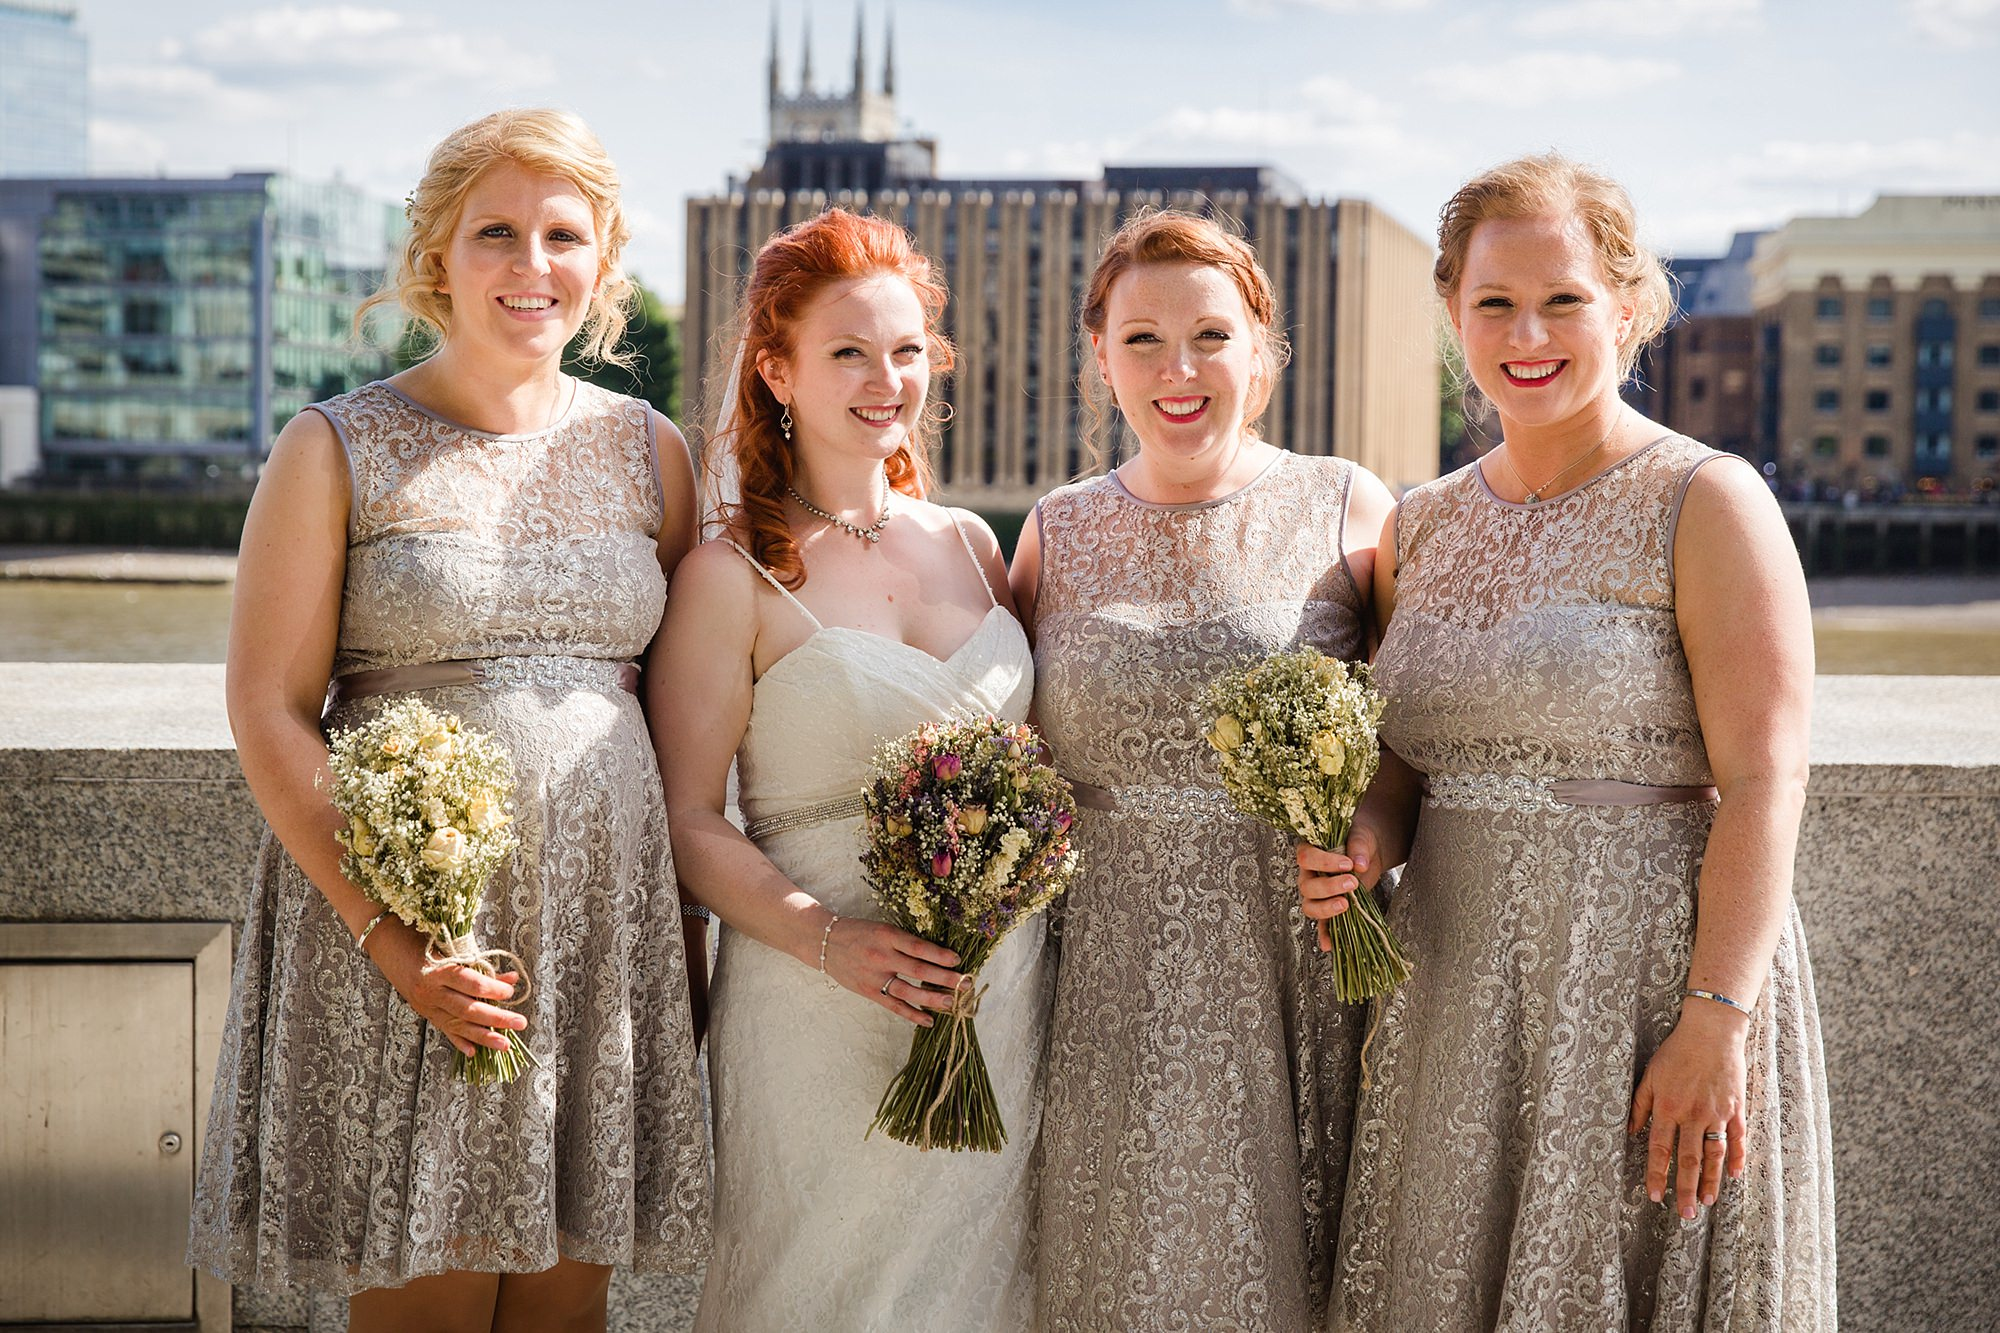 oyster shed wedding portrait of bride and bridesmaids